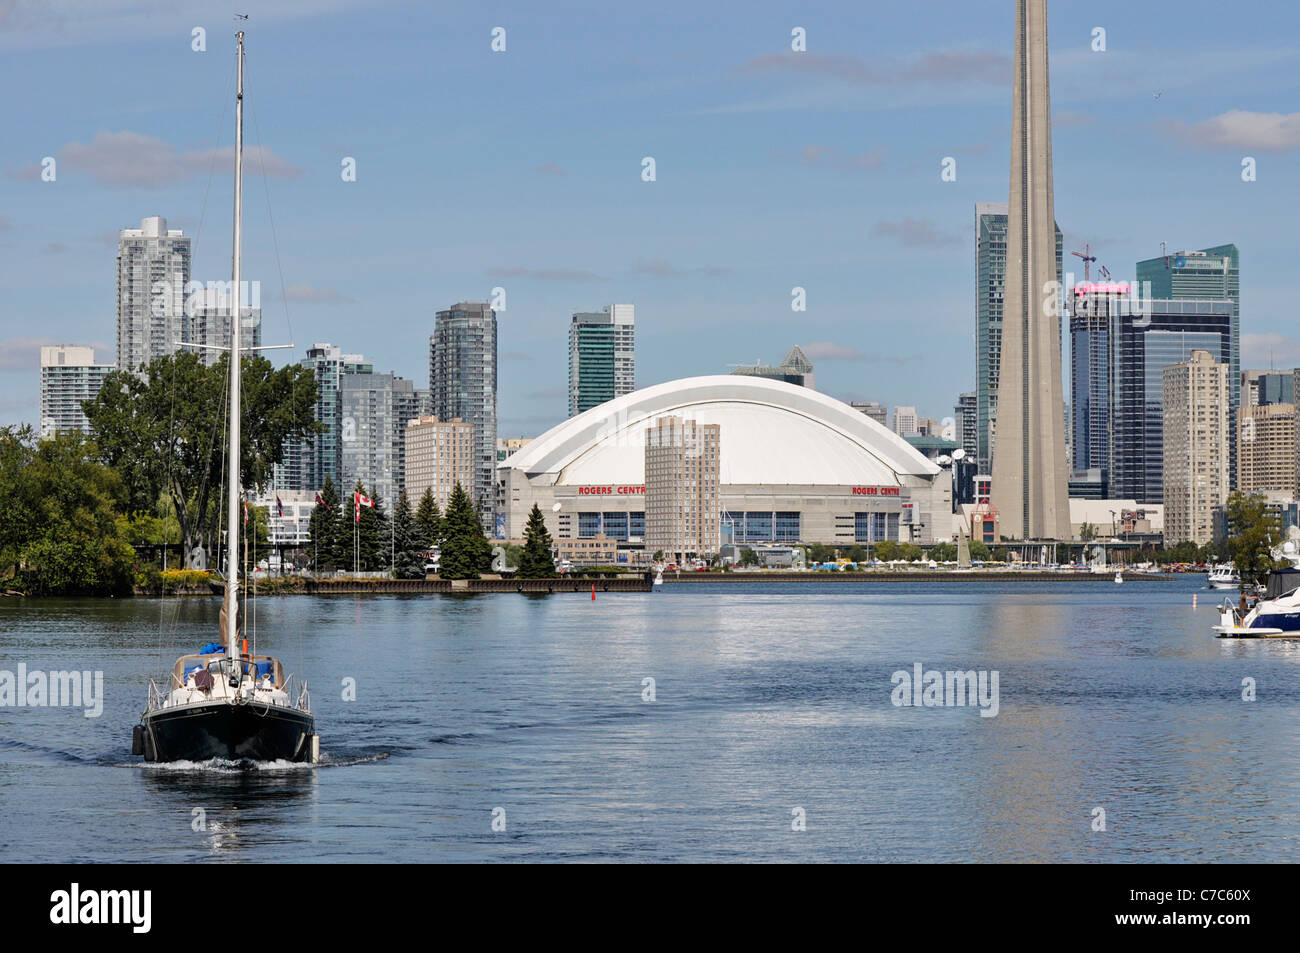 Toronto view of Harbroufront, Financial Centre, Condos, Skydome - Stock Image